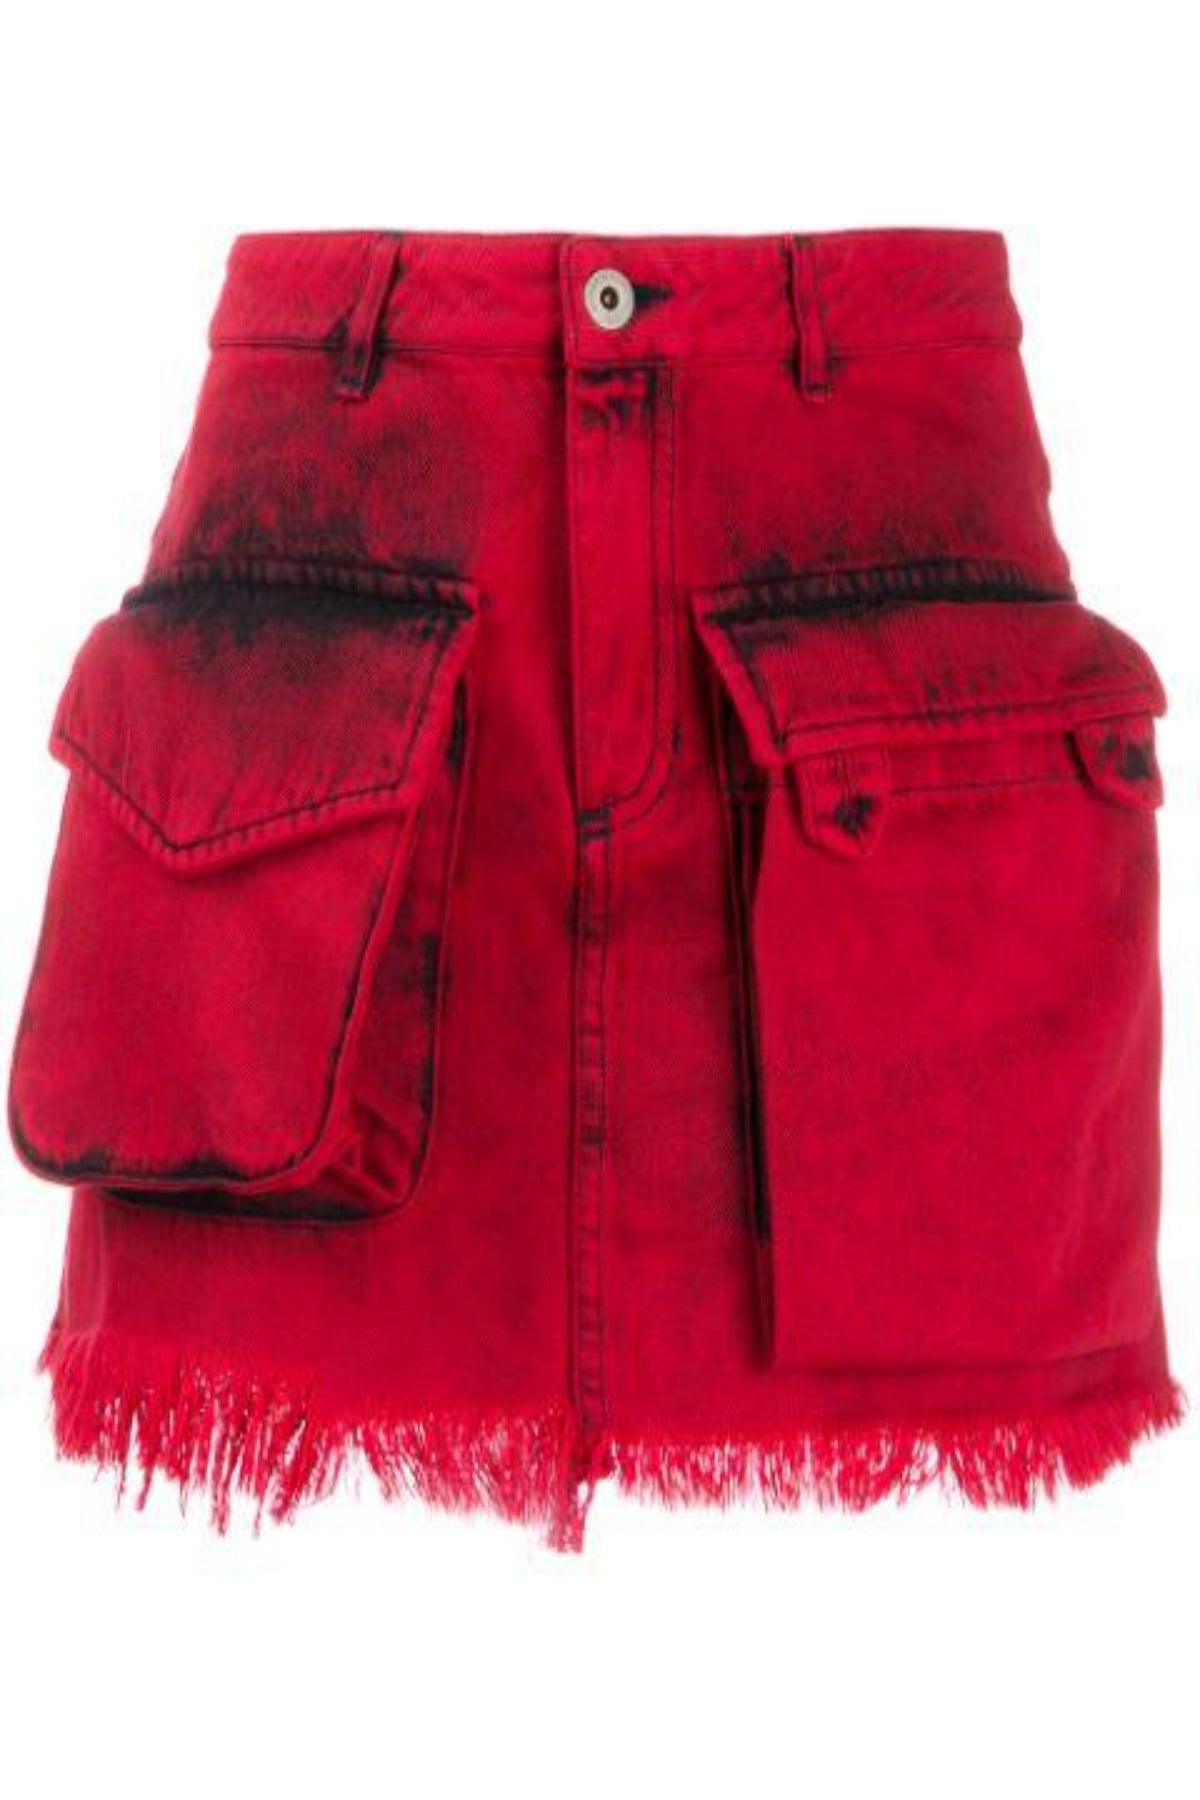 PATCH POCKET MINI SKIRT IN RED - marques-almeida